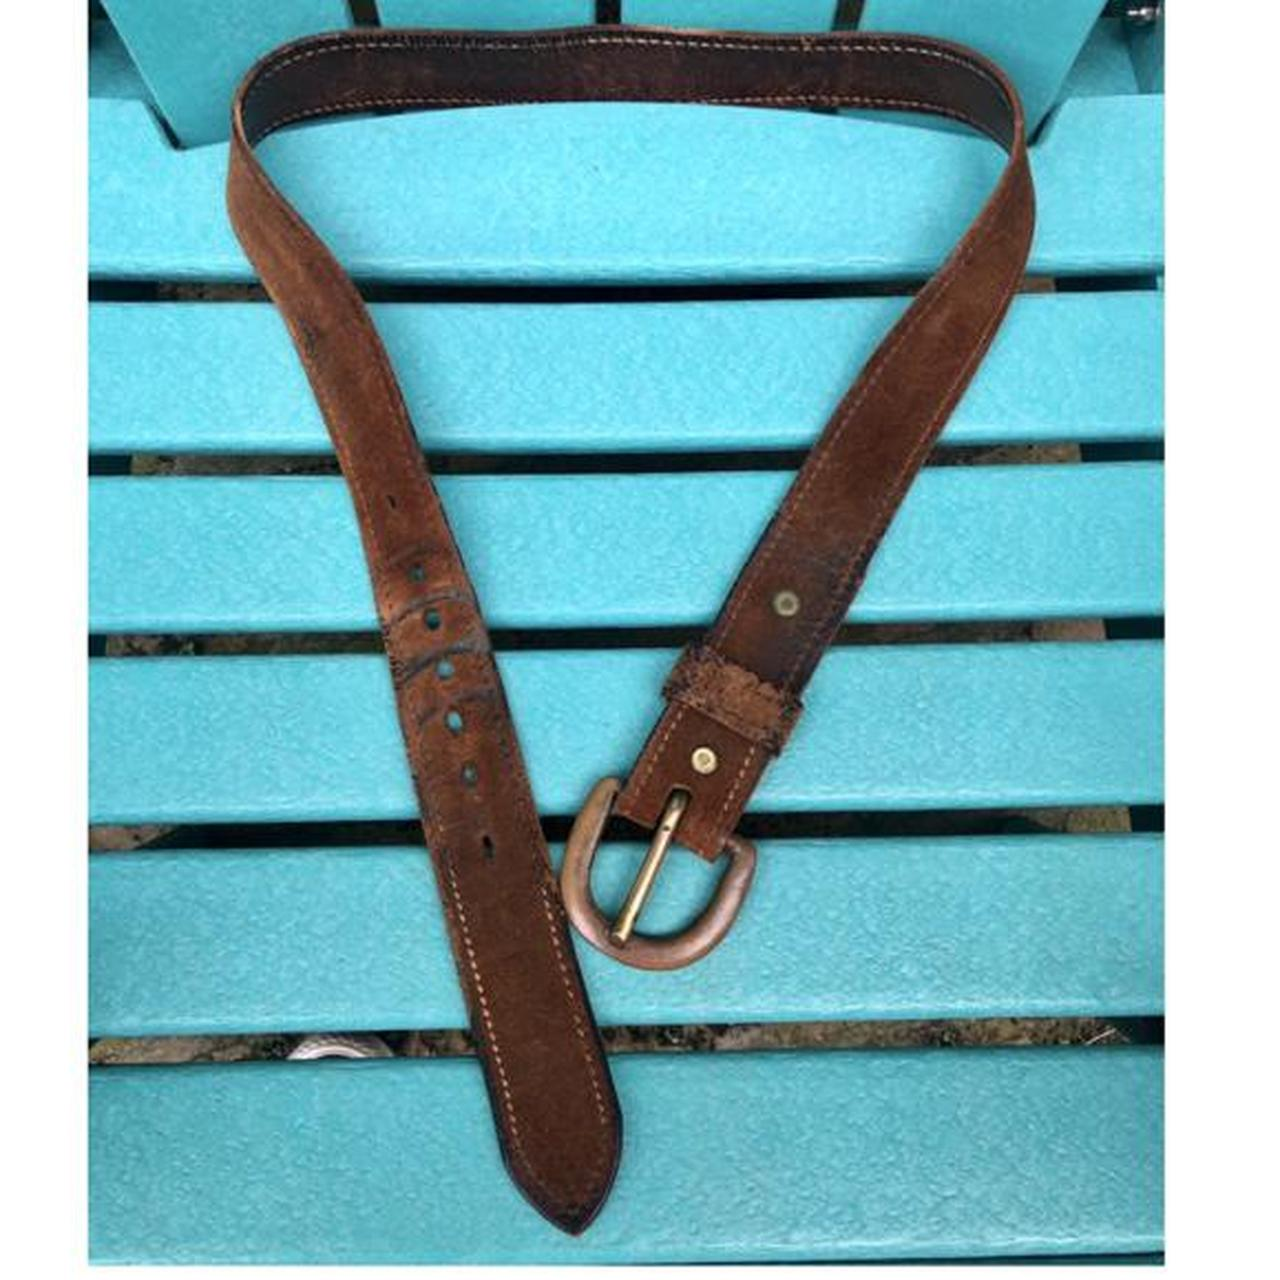 Product Image 1 - Vintage Genuine Leather Belt featuring